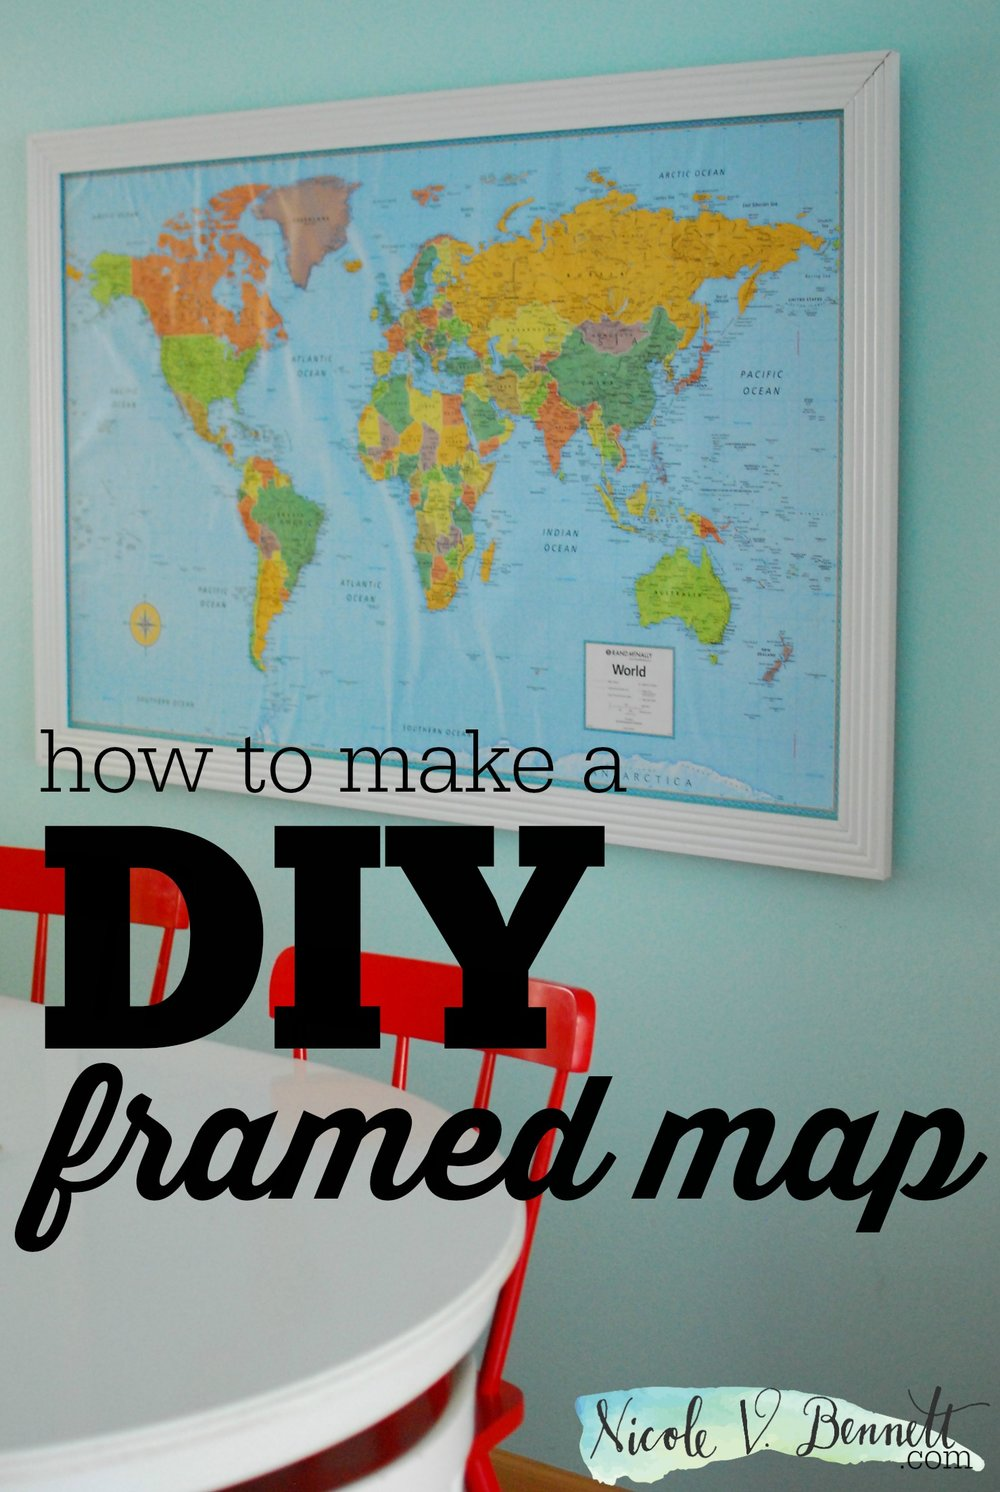 how to make a DIY framed map